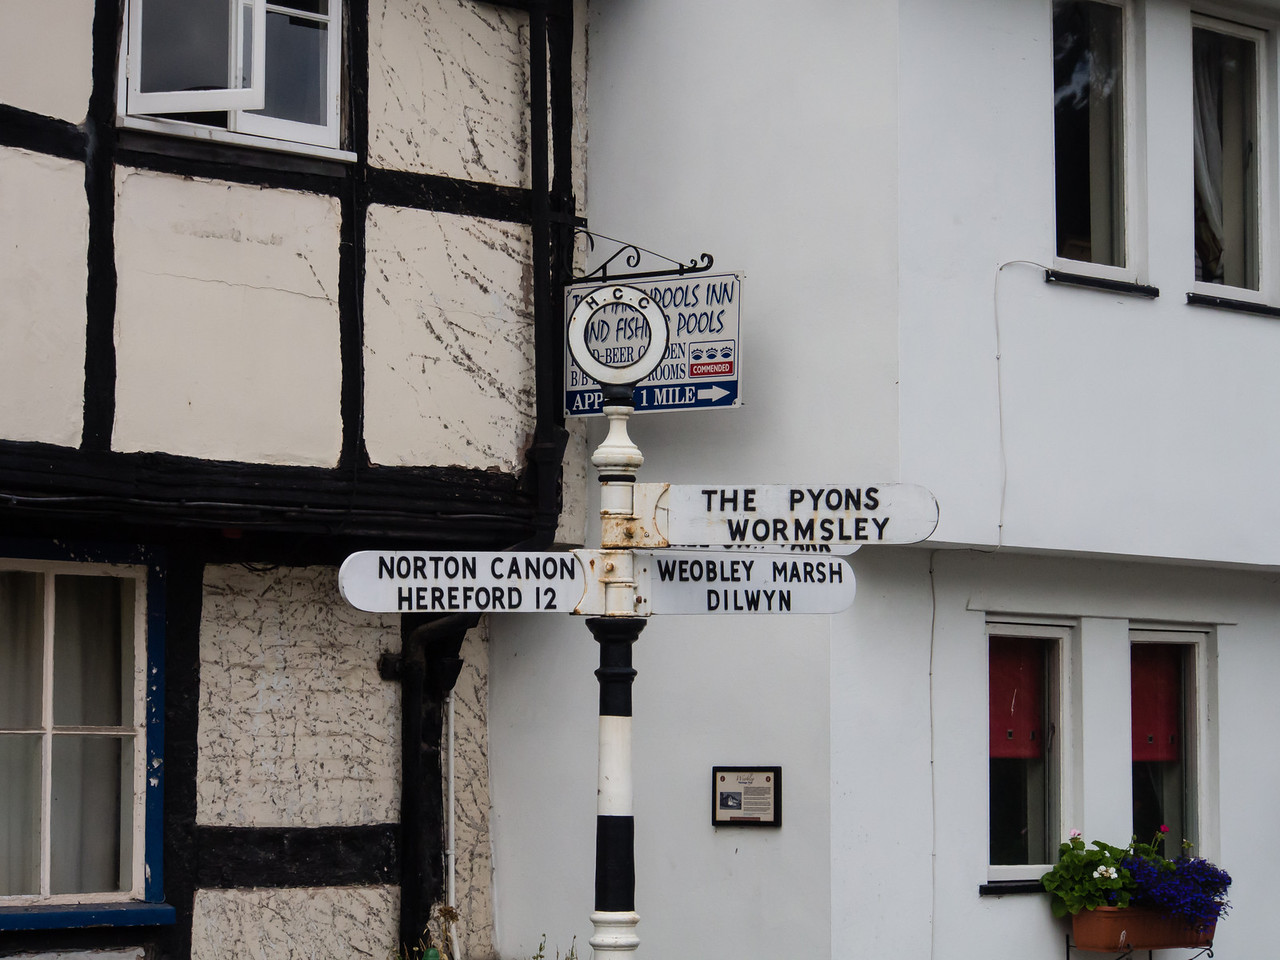 Do you know the way to Pyons Wormsley...